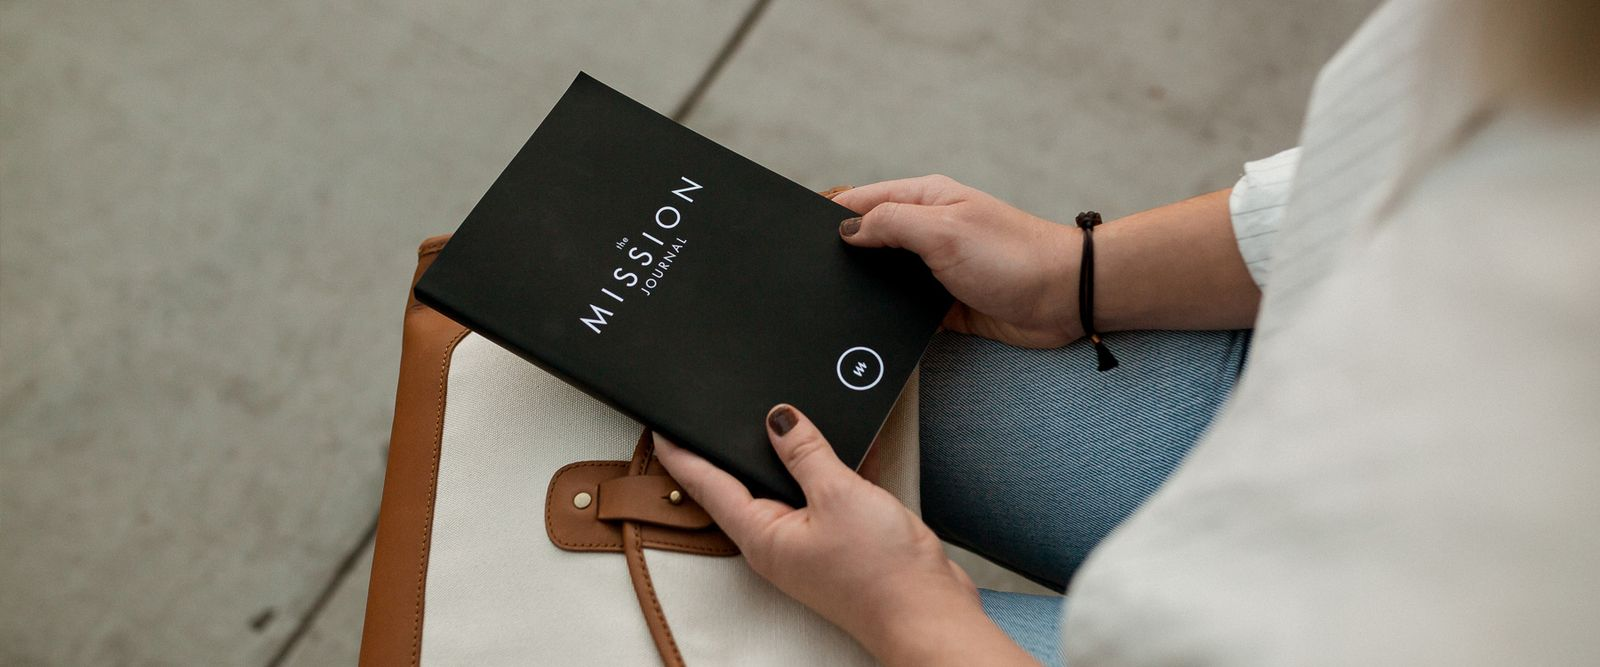 Woman holding a black book in her hands